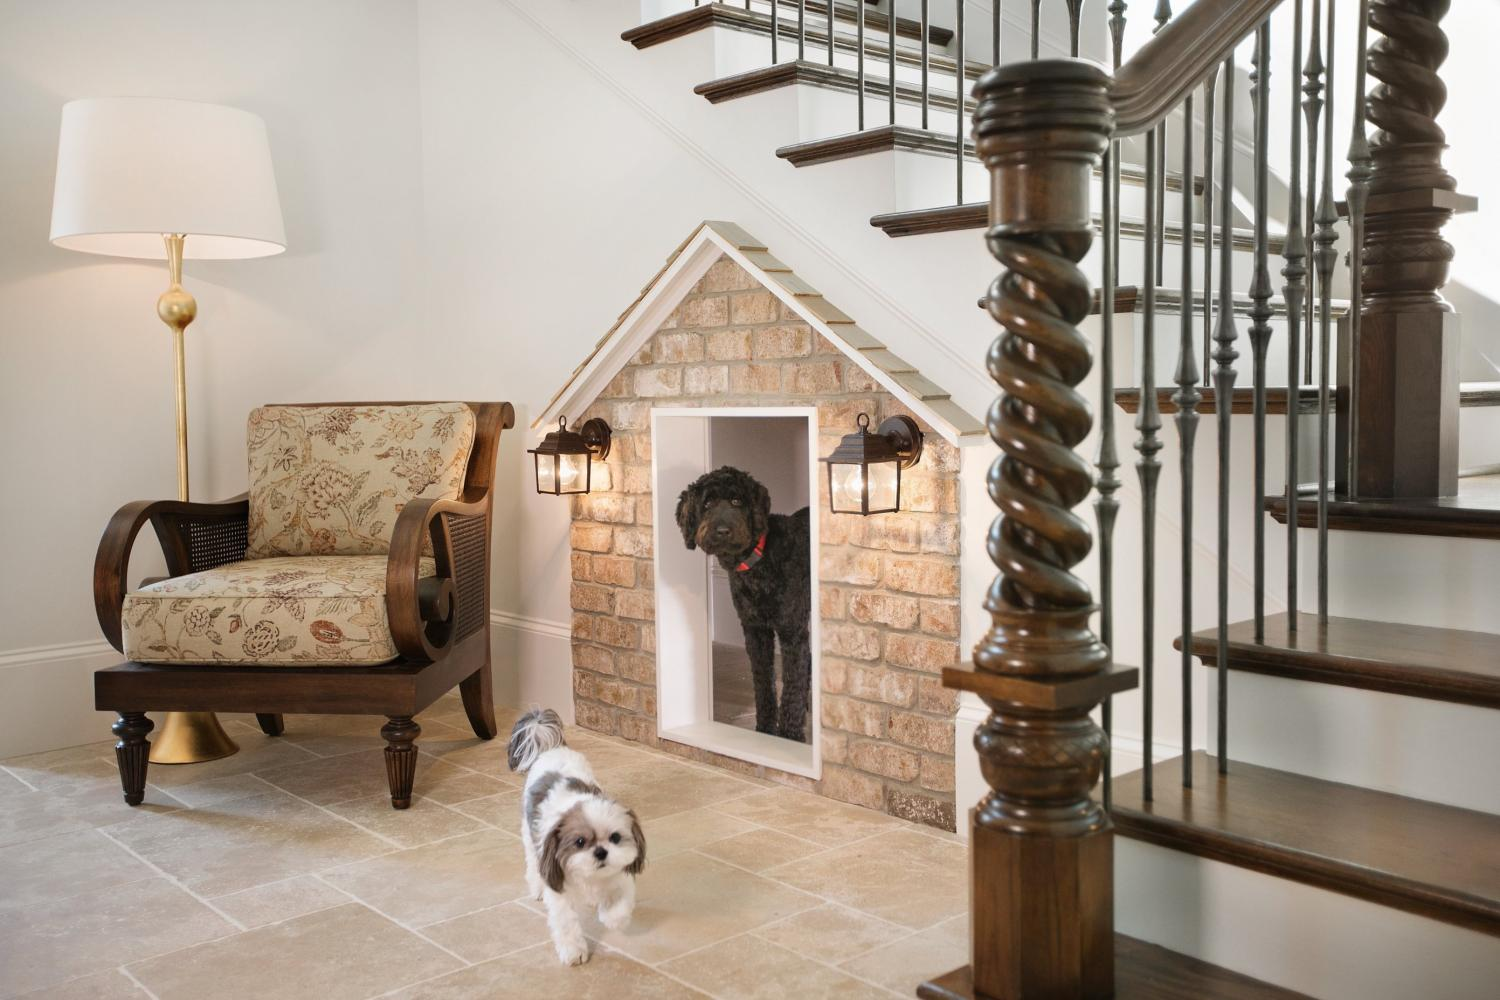 Most Creative Under The Stairs Home Designs - Brick dog house under the stairs